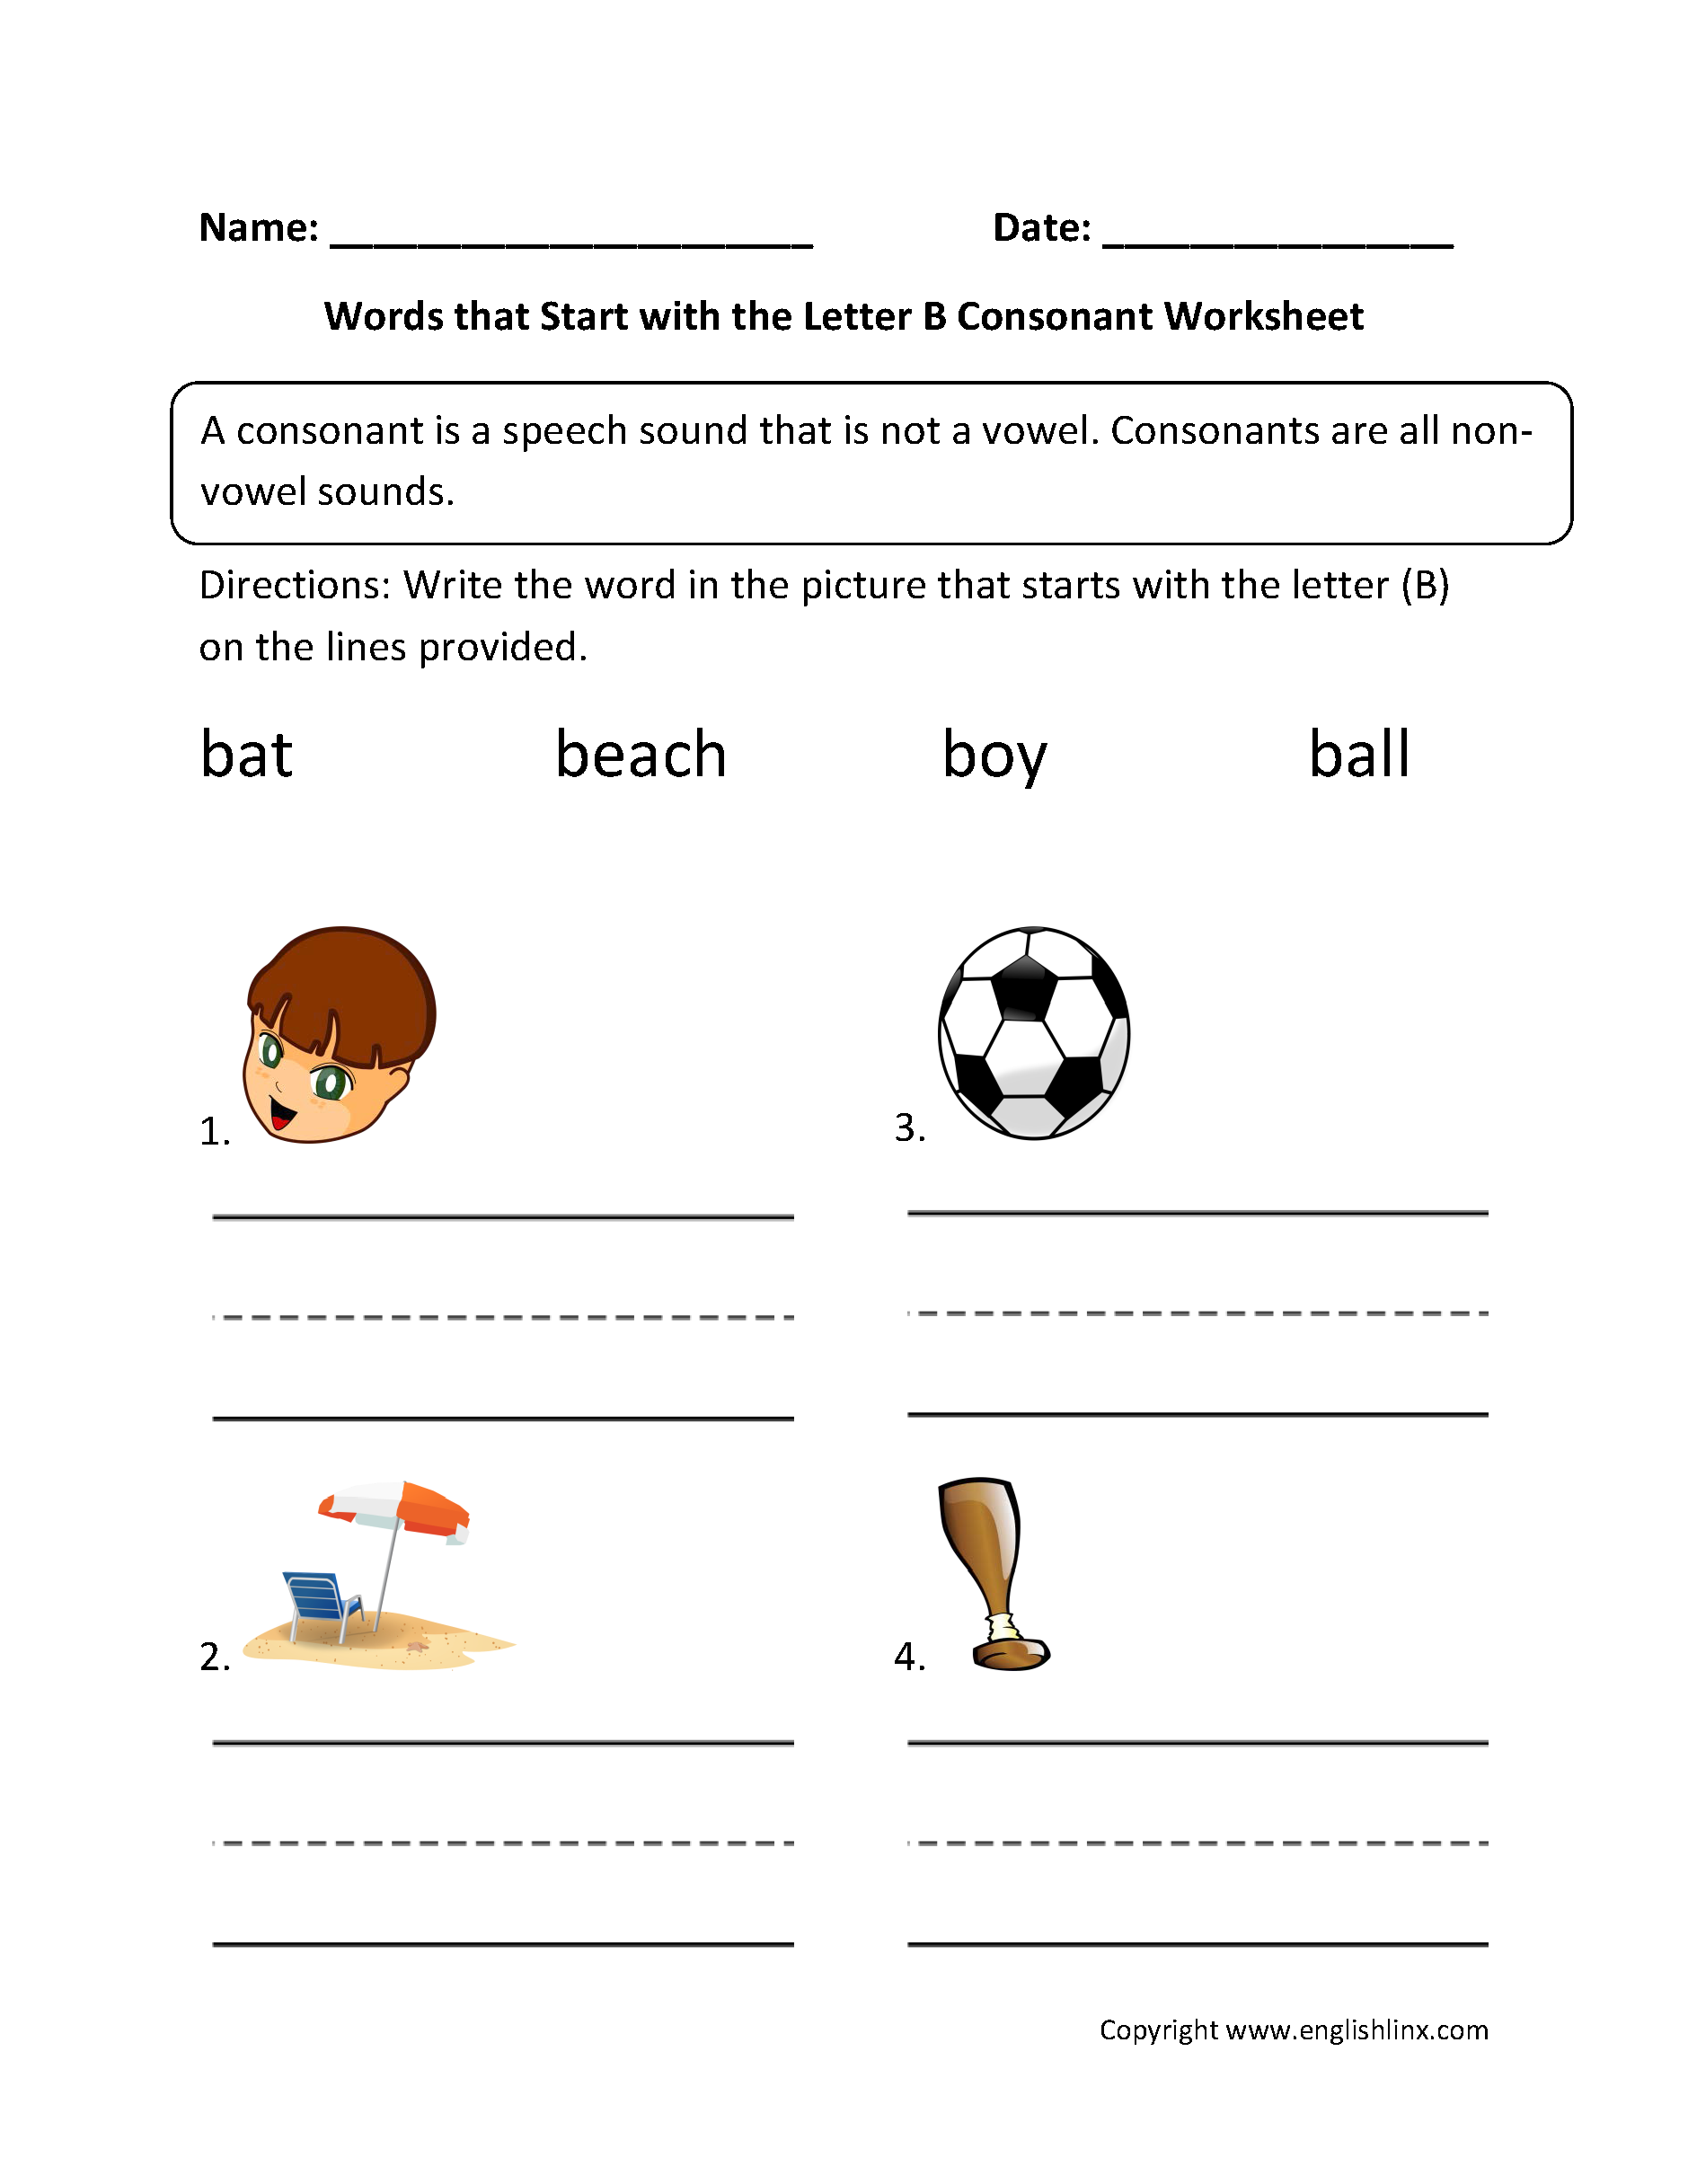 Words Start Letter B Consonant Worksheets